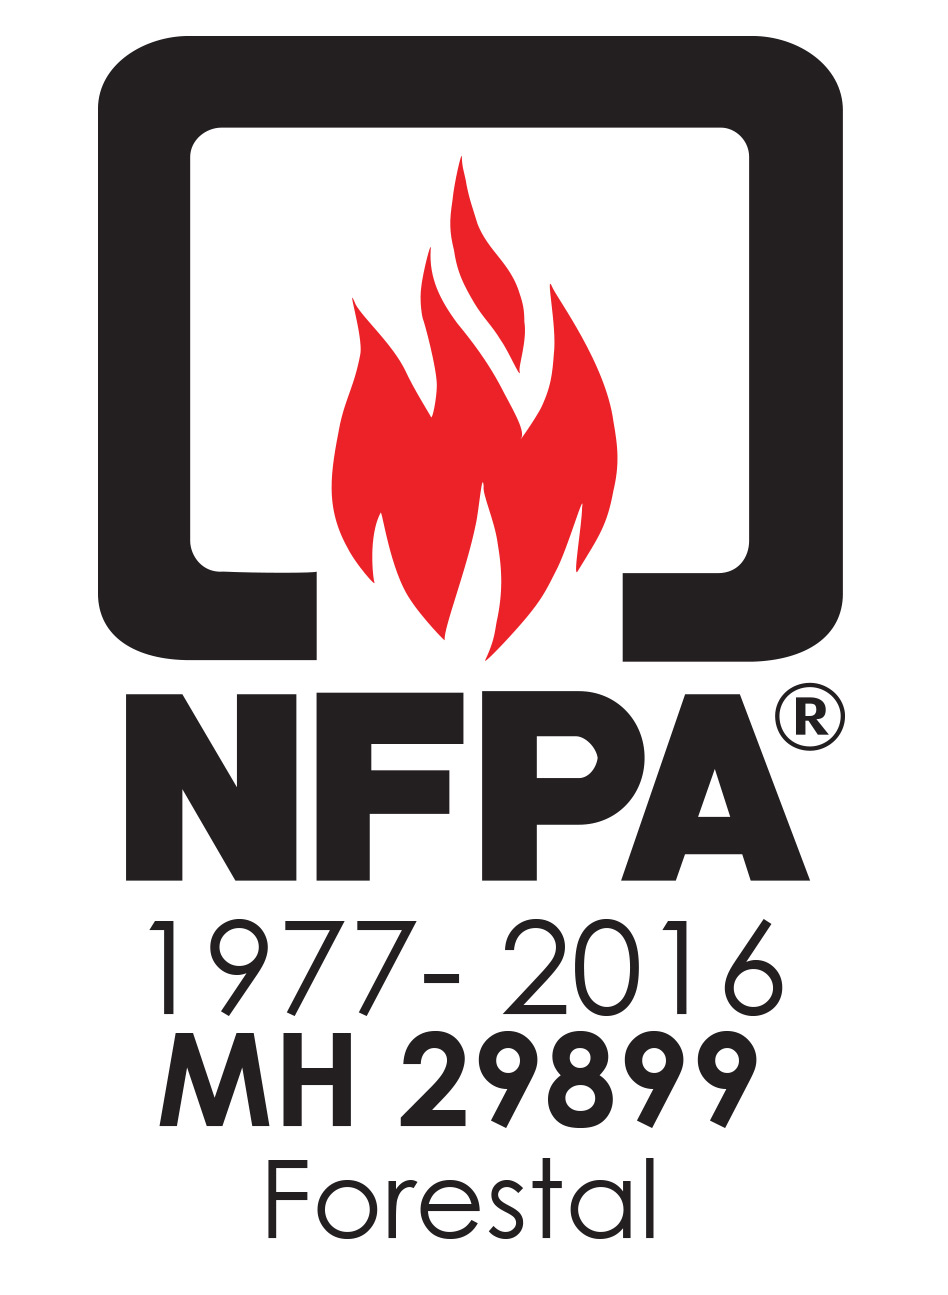 NFPA Bombero Forestal